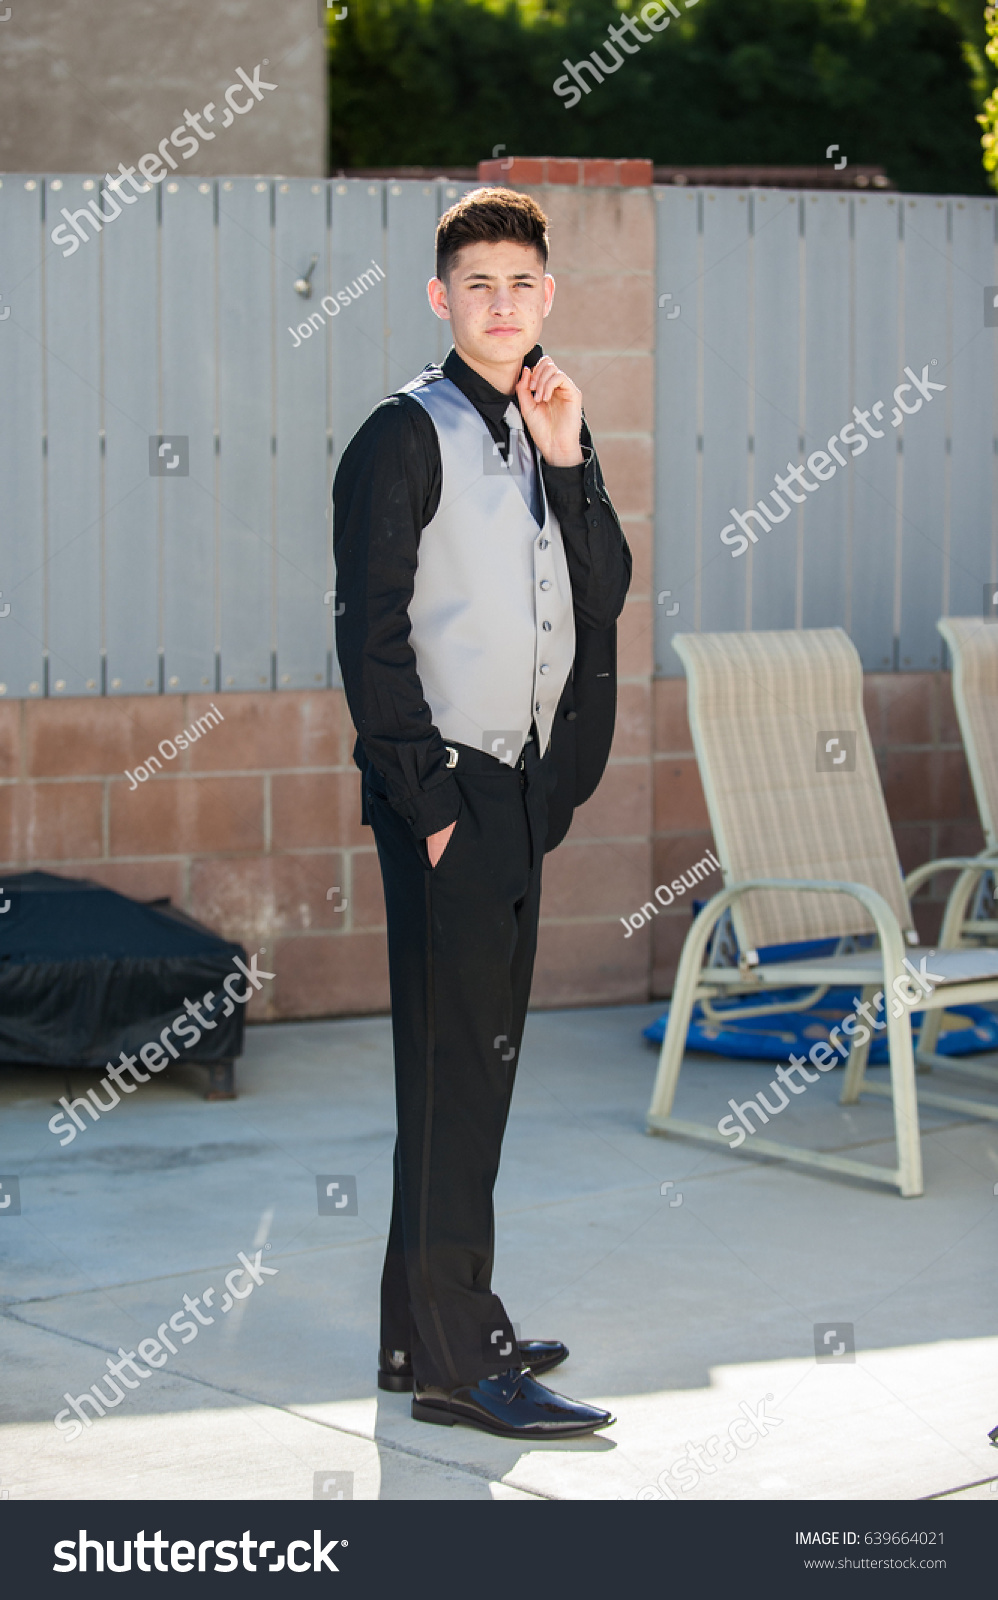 Handsome Mexican Teen Holding Jacket Over Stock Photo (Royalty Free ...